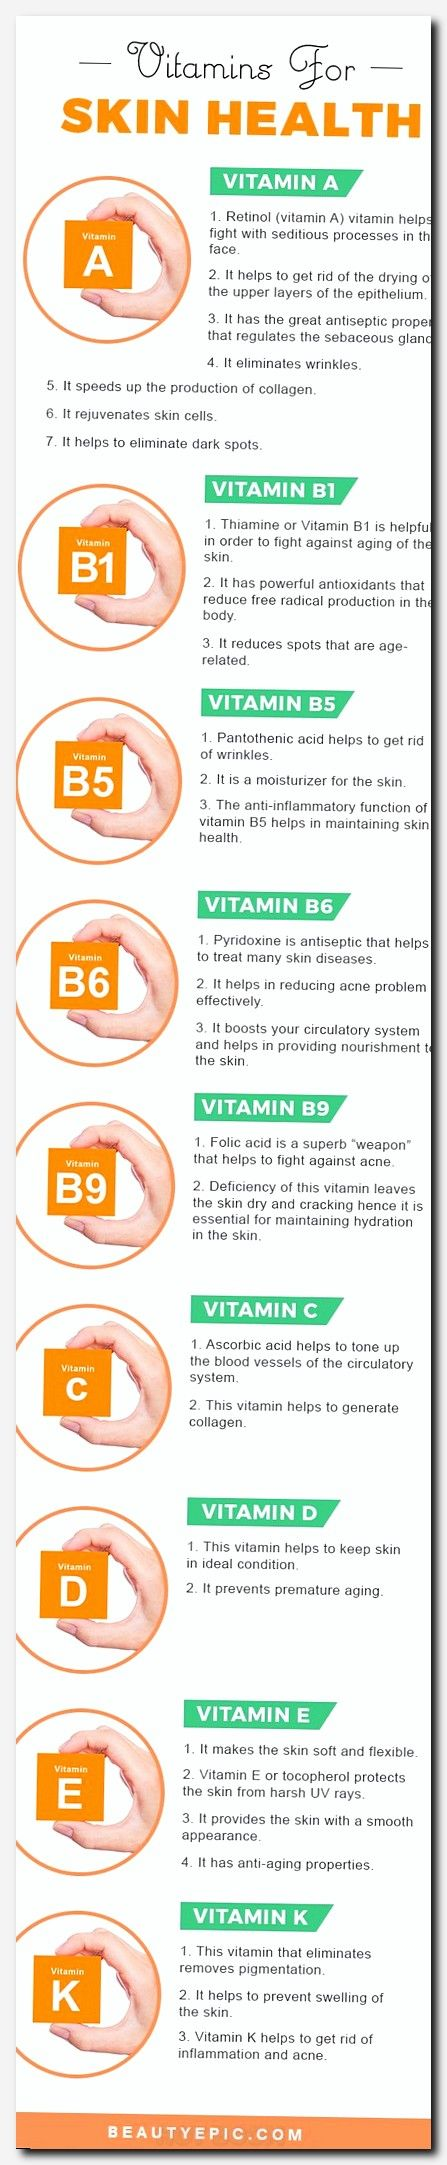 #skincare #skin #care sincerely yours synonym, how can i take care of my face daily, eureka body care, home tips for beauty, hayfa beauty skin care, clear skin care clinic, forever young skin, moisturized skin, careline products review, winter beauty tips dry skin, best 2017 skin care products, red face skin condition, bath and body store, pharmacy beauty, winter care for oily skin, skin care tips for men in hindi